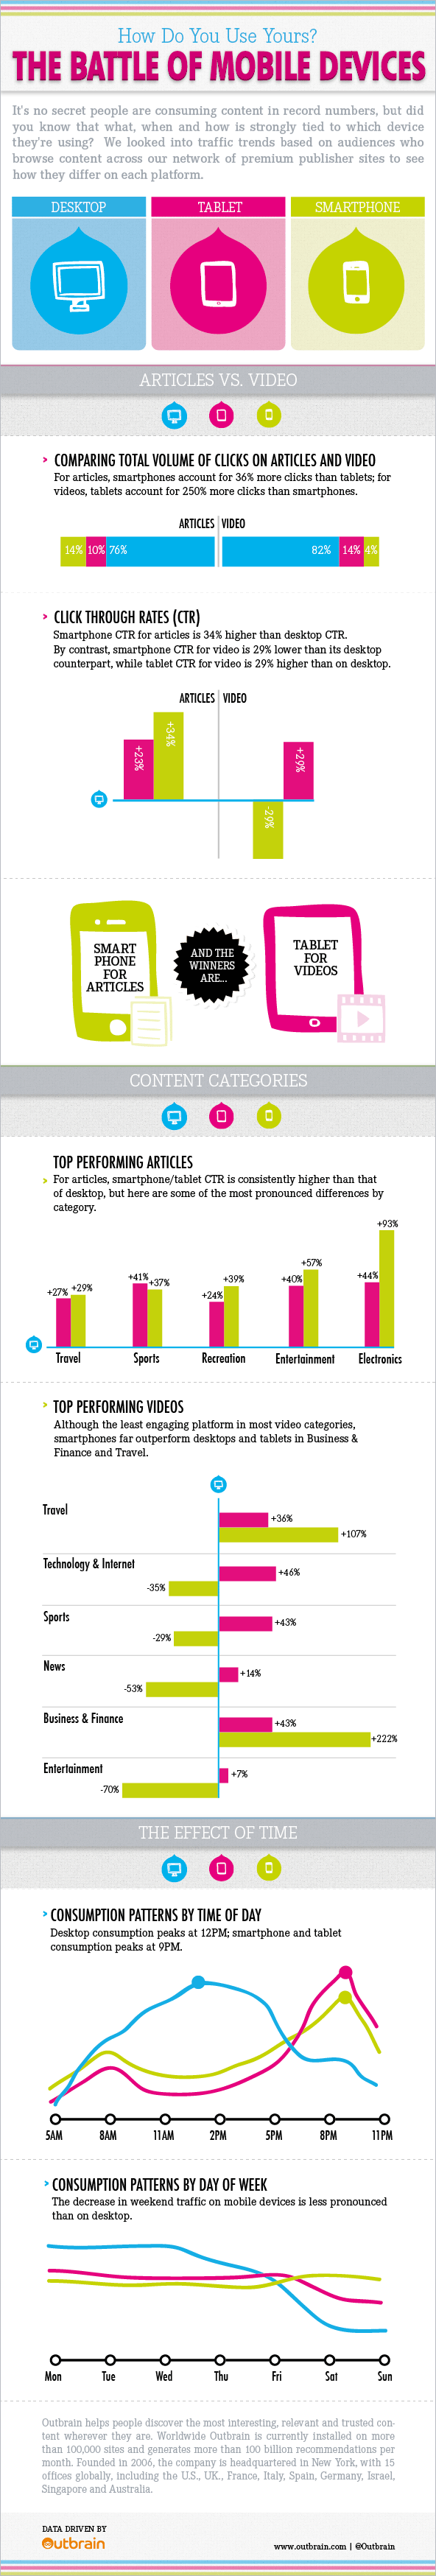 How Do You Like Your Content? Depends On The Device You're Using (Infographic - outbrain)